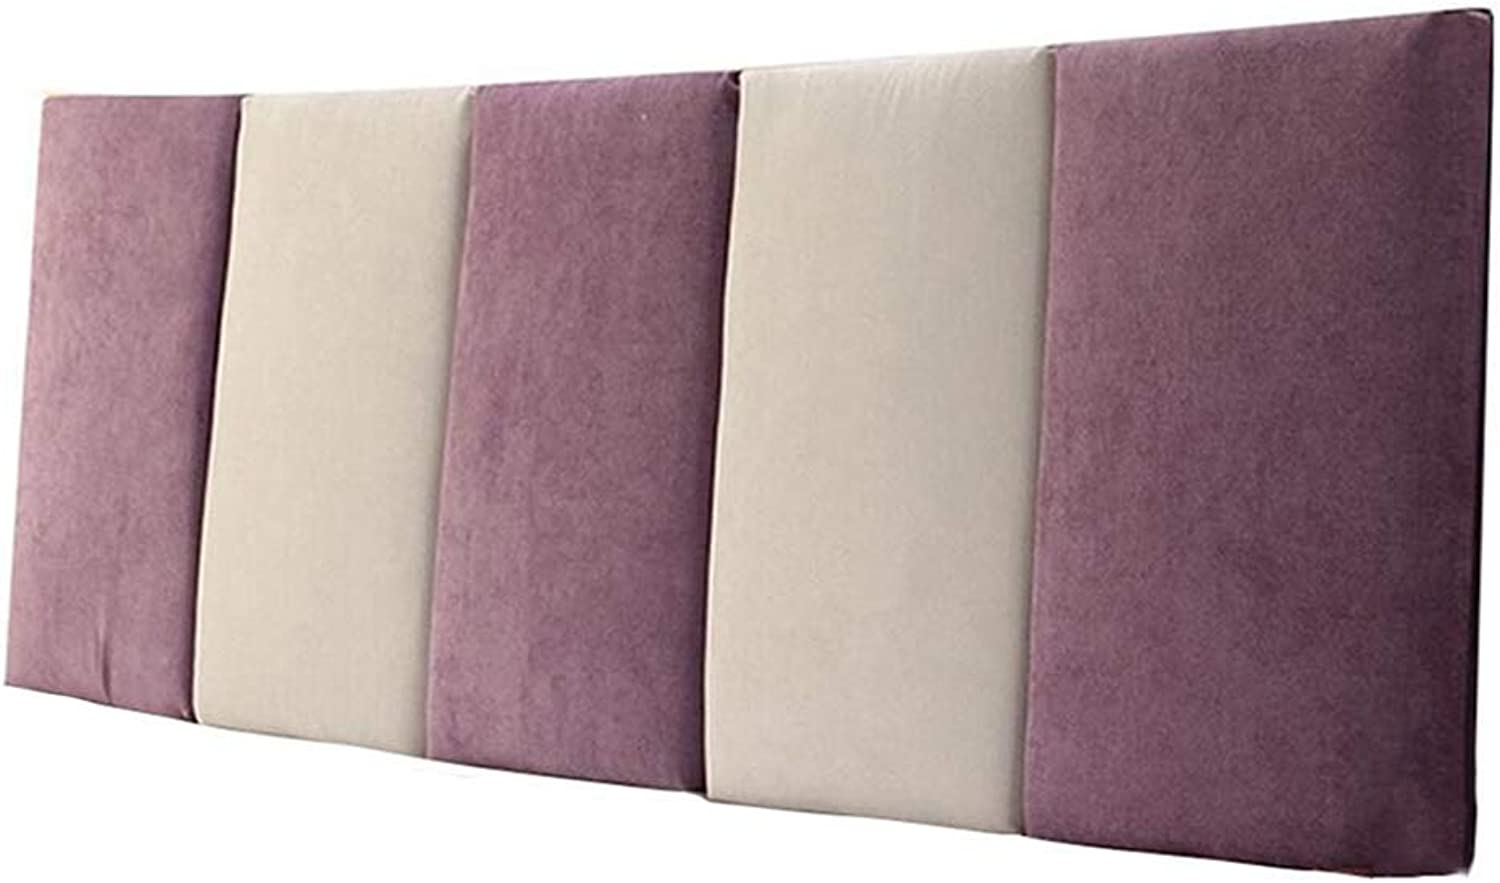 WENZHE Upholstered Fabric Headboard Bedside Cushion Pads Cover Bed Wedges Backrest Waist Pad Soft Case Washable Cloth Waist Belt Backrest Home, 3 colors (color   B-Purple, Size   120x55x5cm)